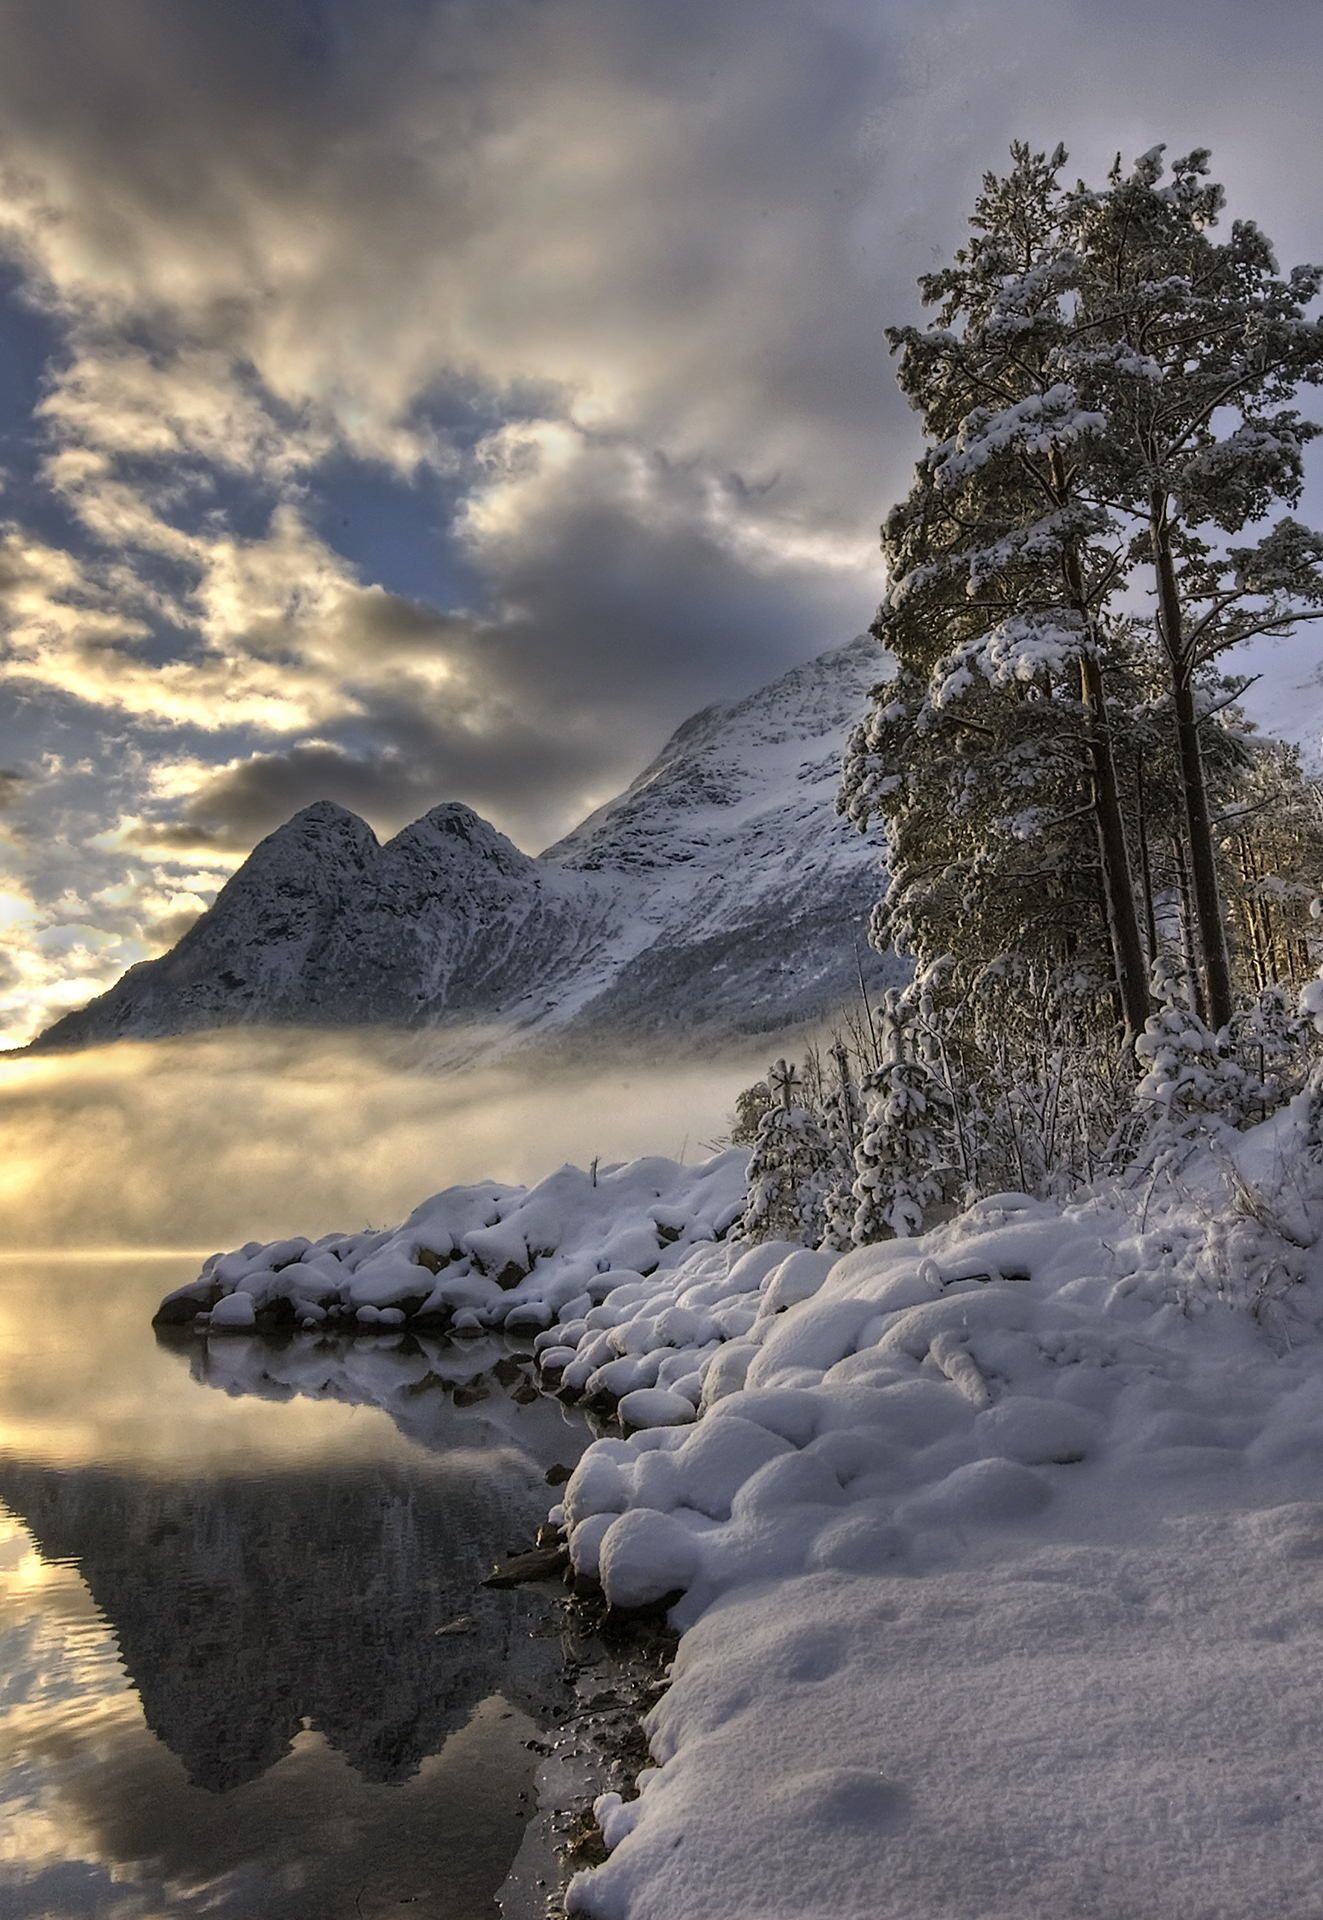 Winter scape in Norway - by Tom Knudsen ….Stay cheap and comfortable on your stopover in Oslo: www.airbnb.com/rooms/1036219?guests=2&s=ja99 and  https://www.airbnb.com/rooms/7828765